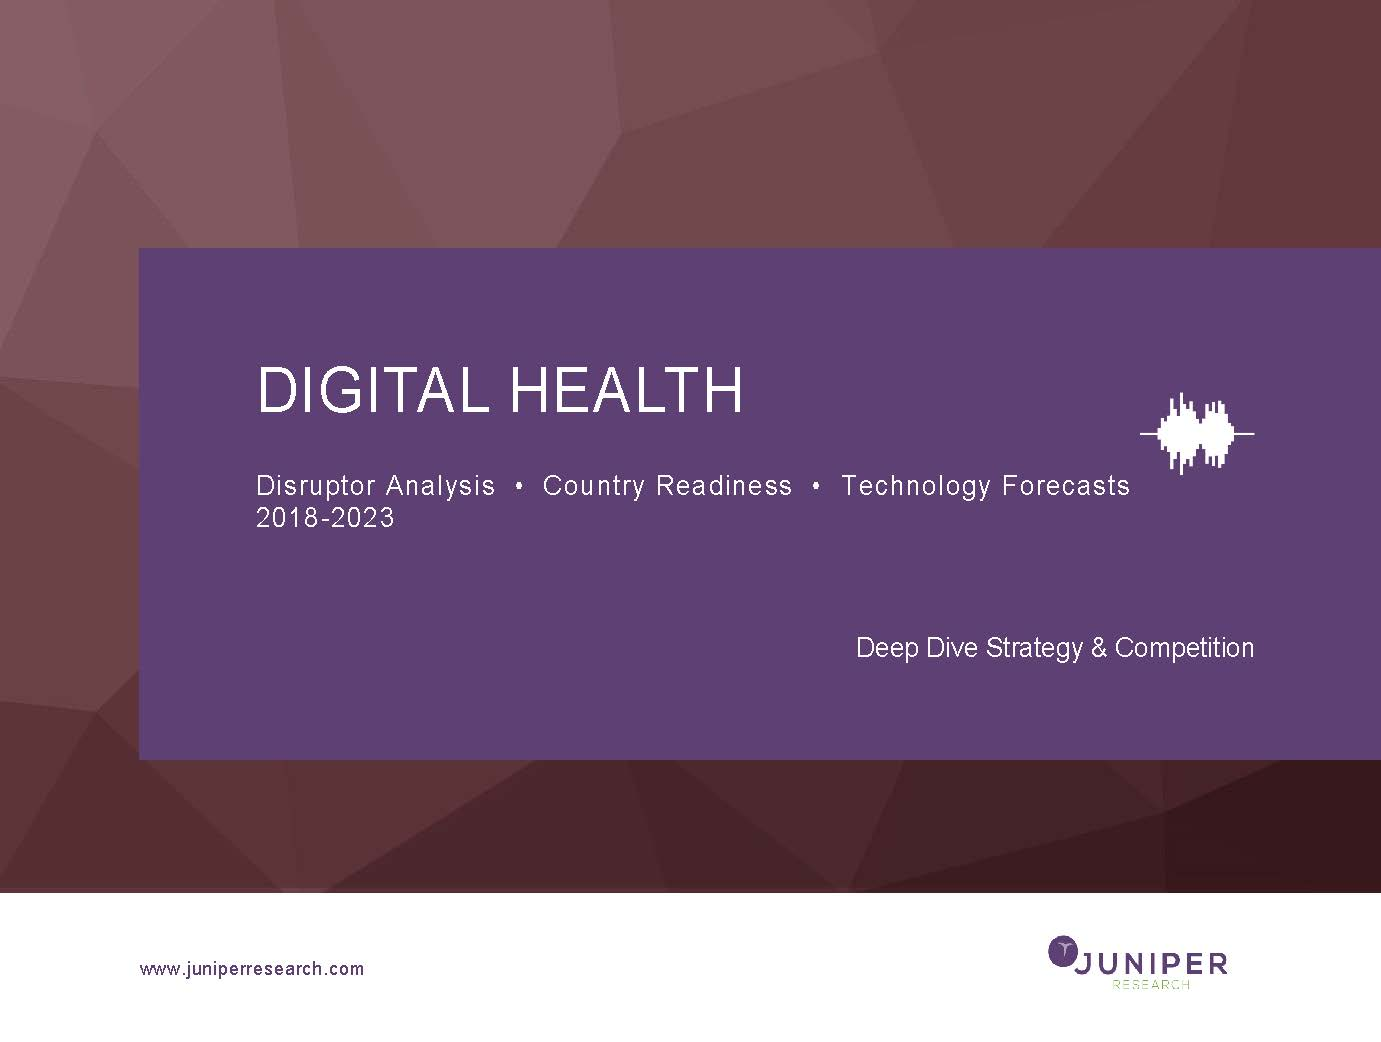 Digital Health: Deep Dive Strategy & Competition  2018-2023